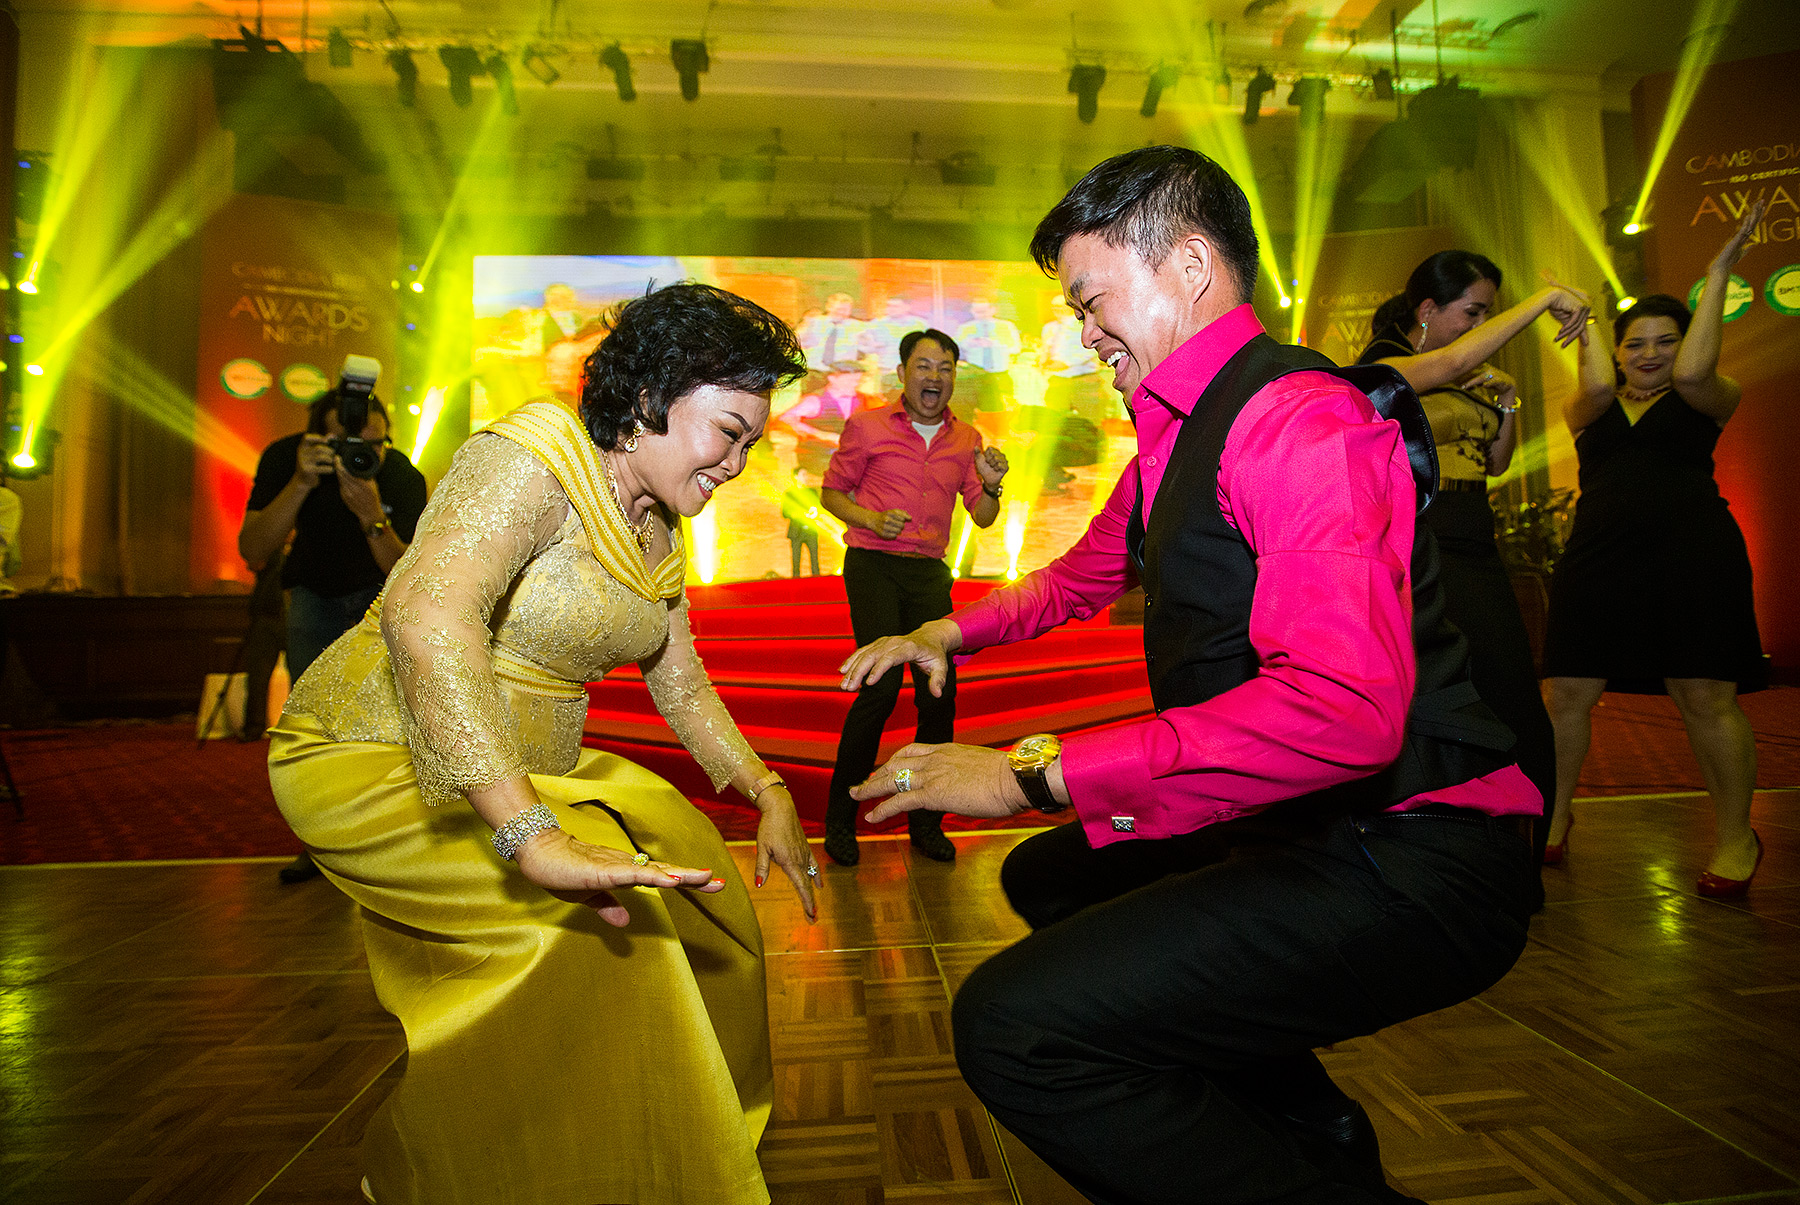 Corporate events, conferences, launches, functions and general events photography.